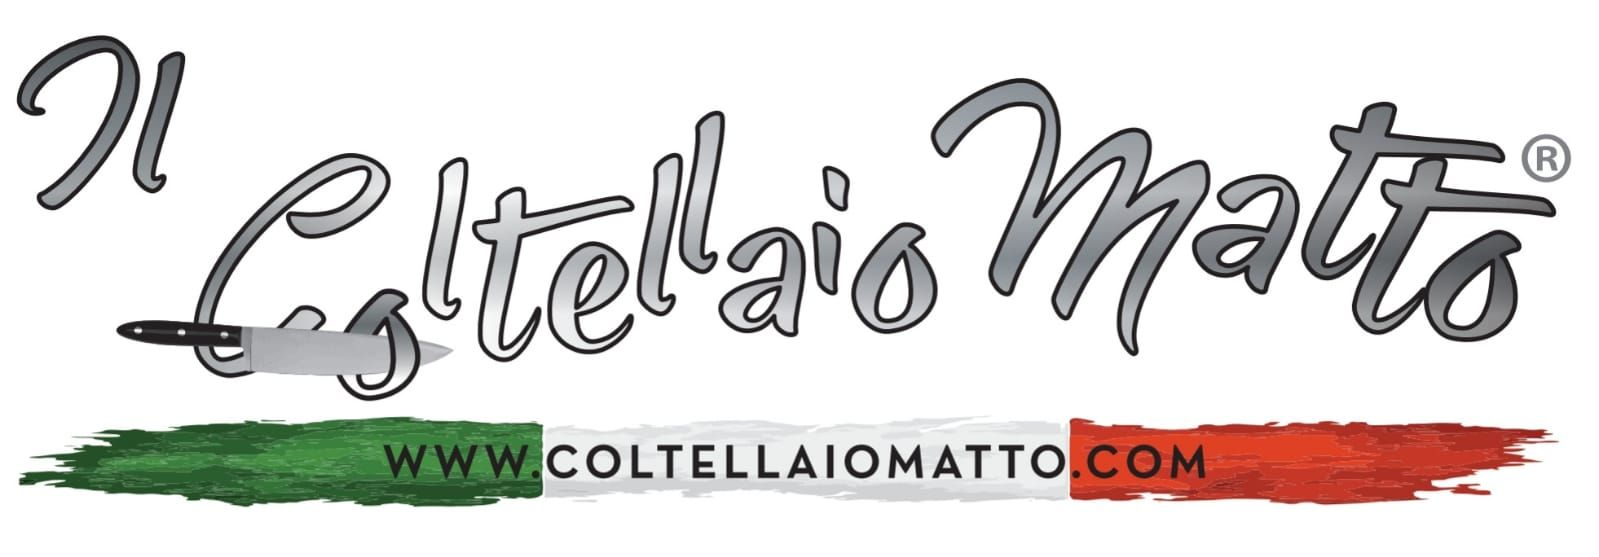 coltellaiomatto2